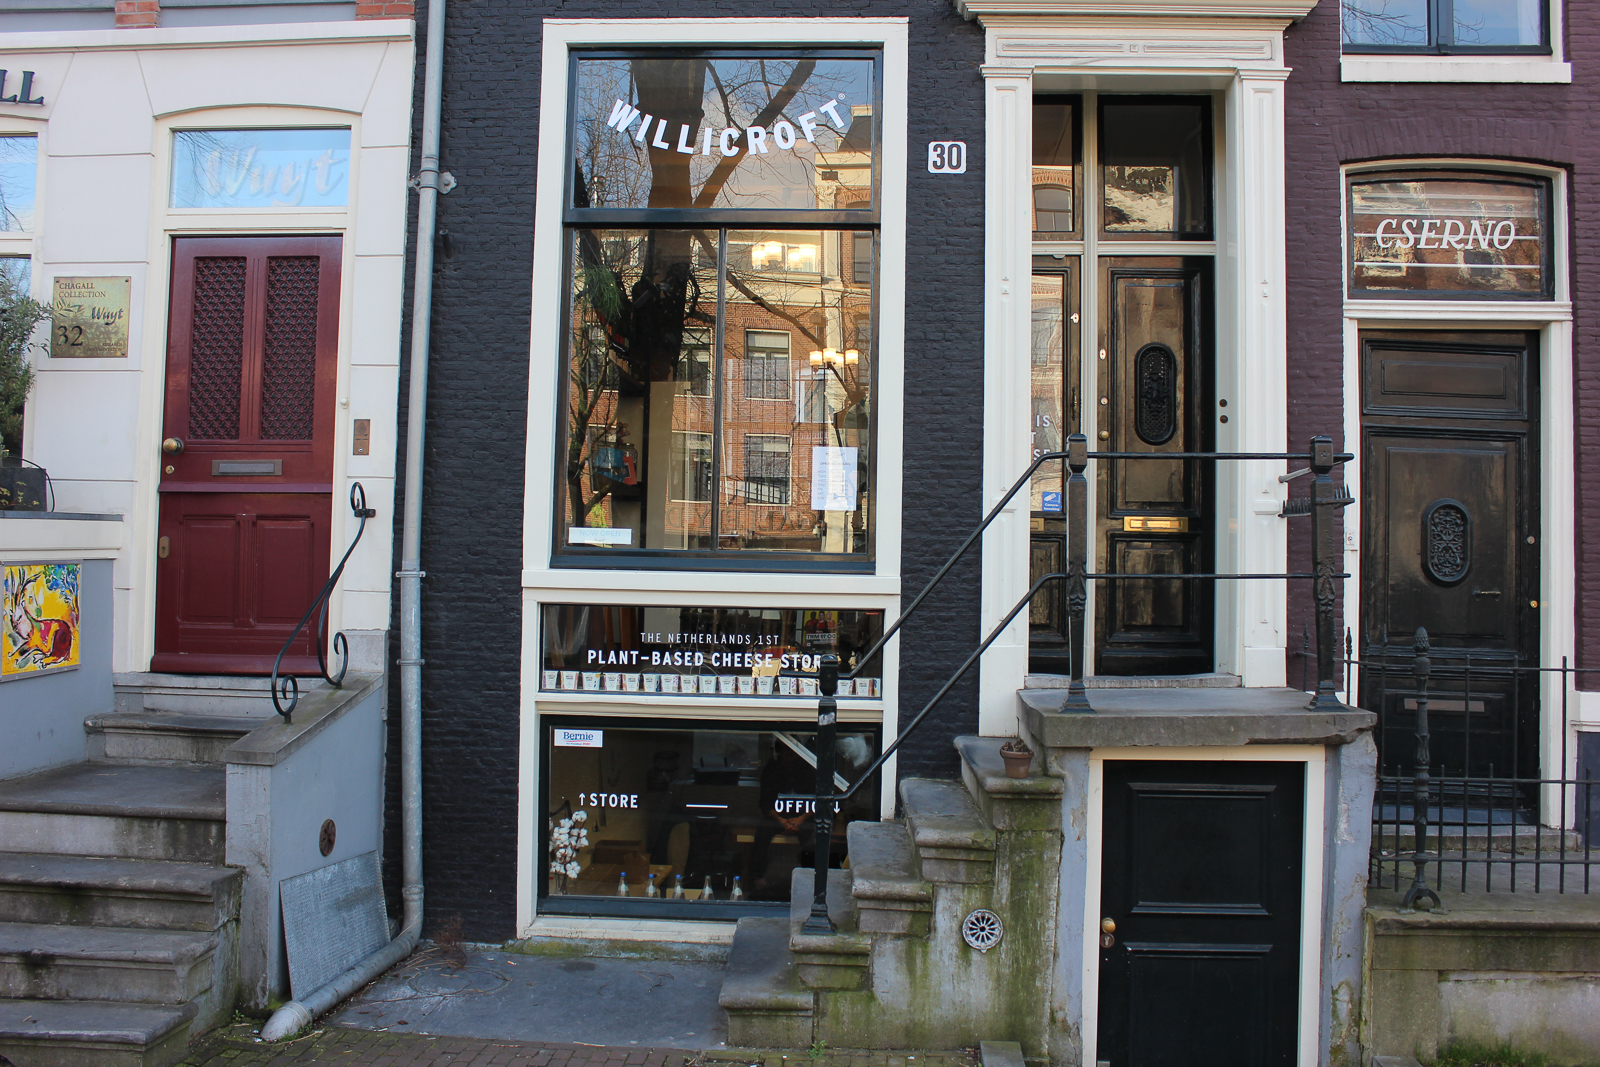 We asked Oost NL, Farmforte & Willicroft: Why the Netherlands?